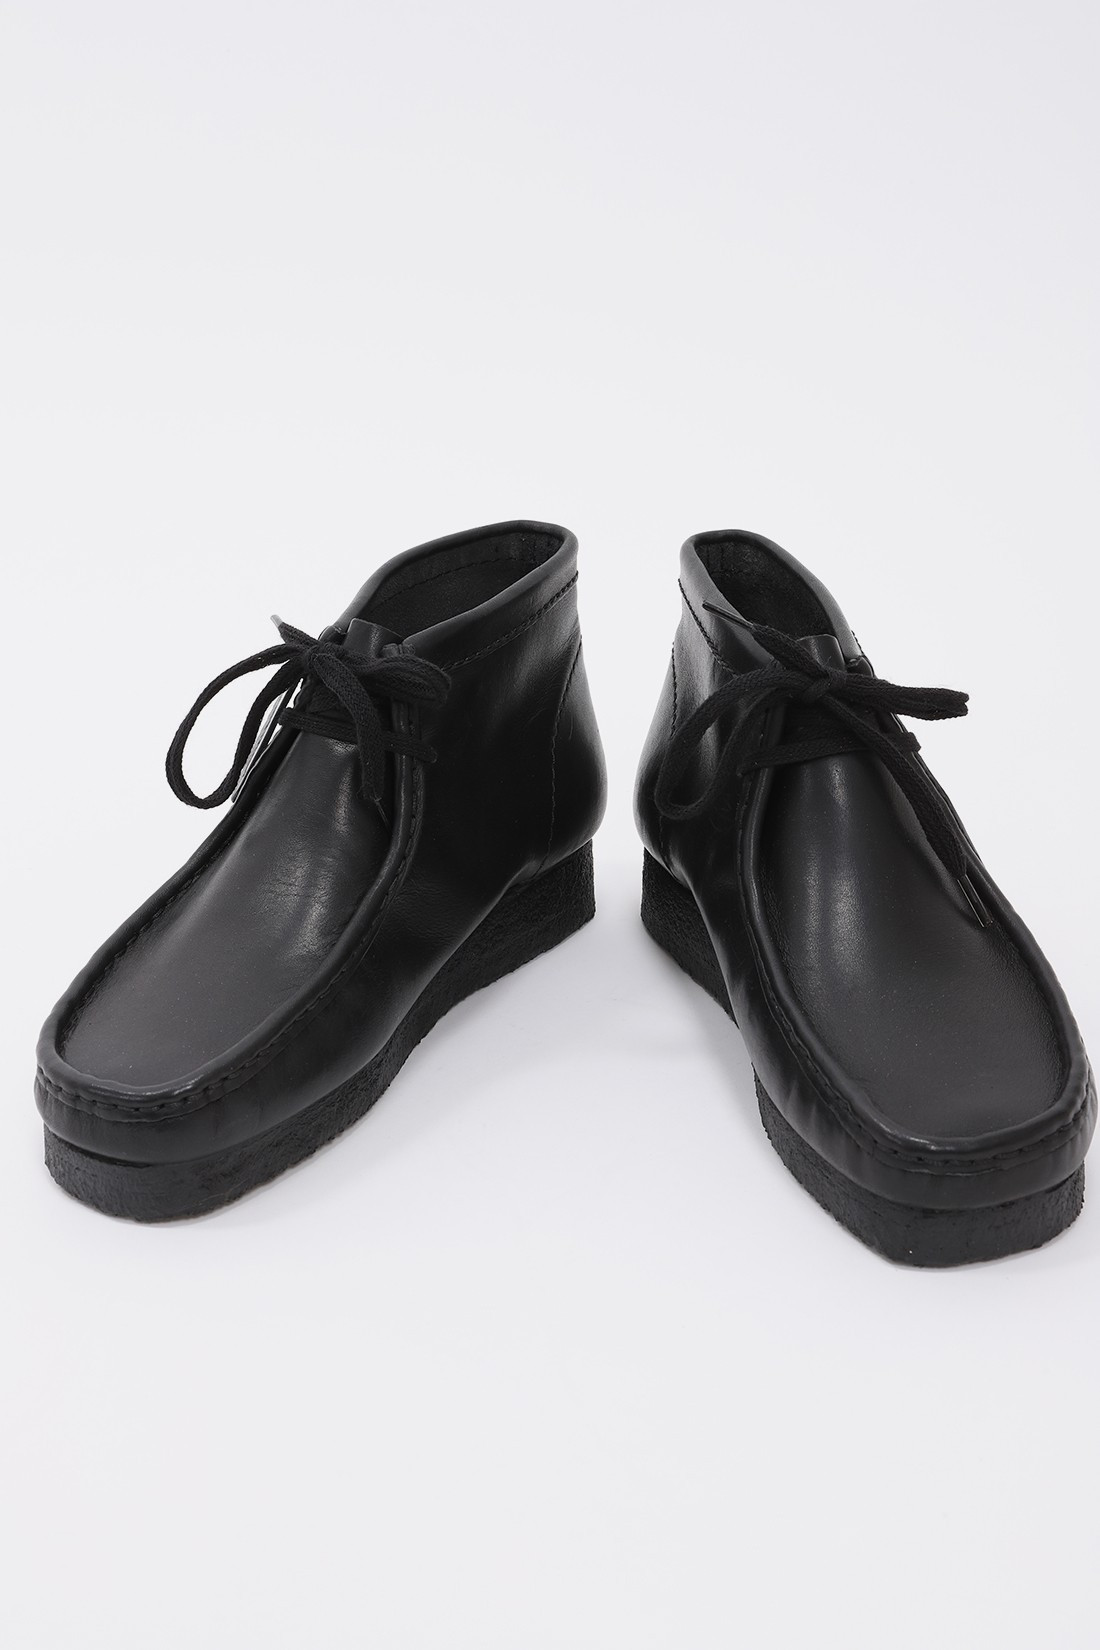 CLARKS ORIGINALS / Wallabee boot Black leather